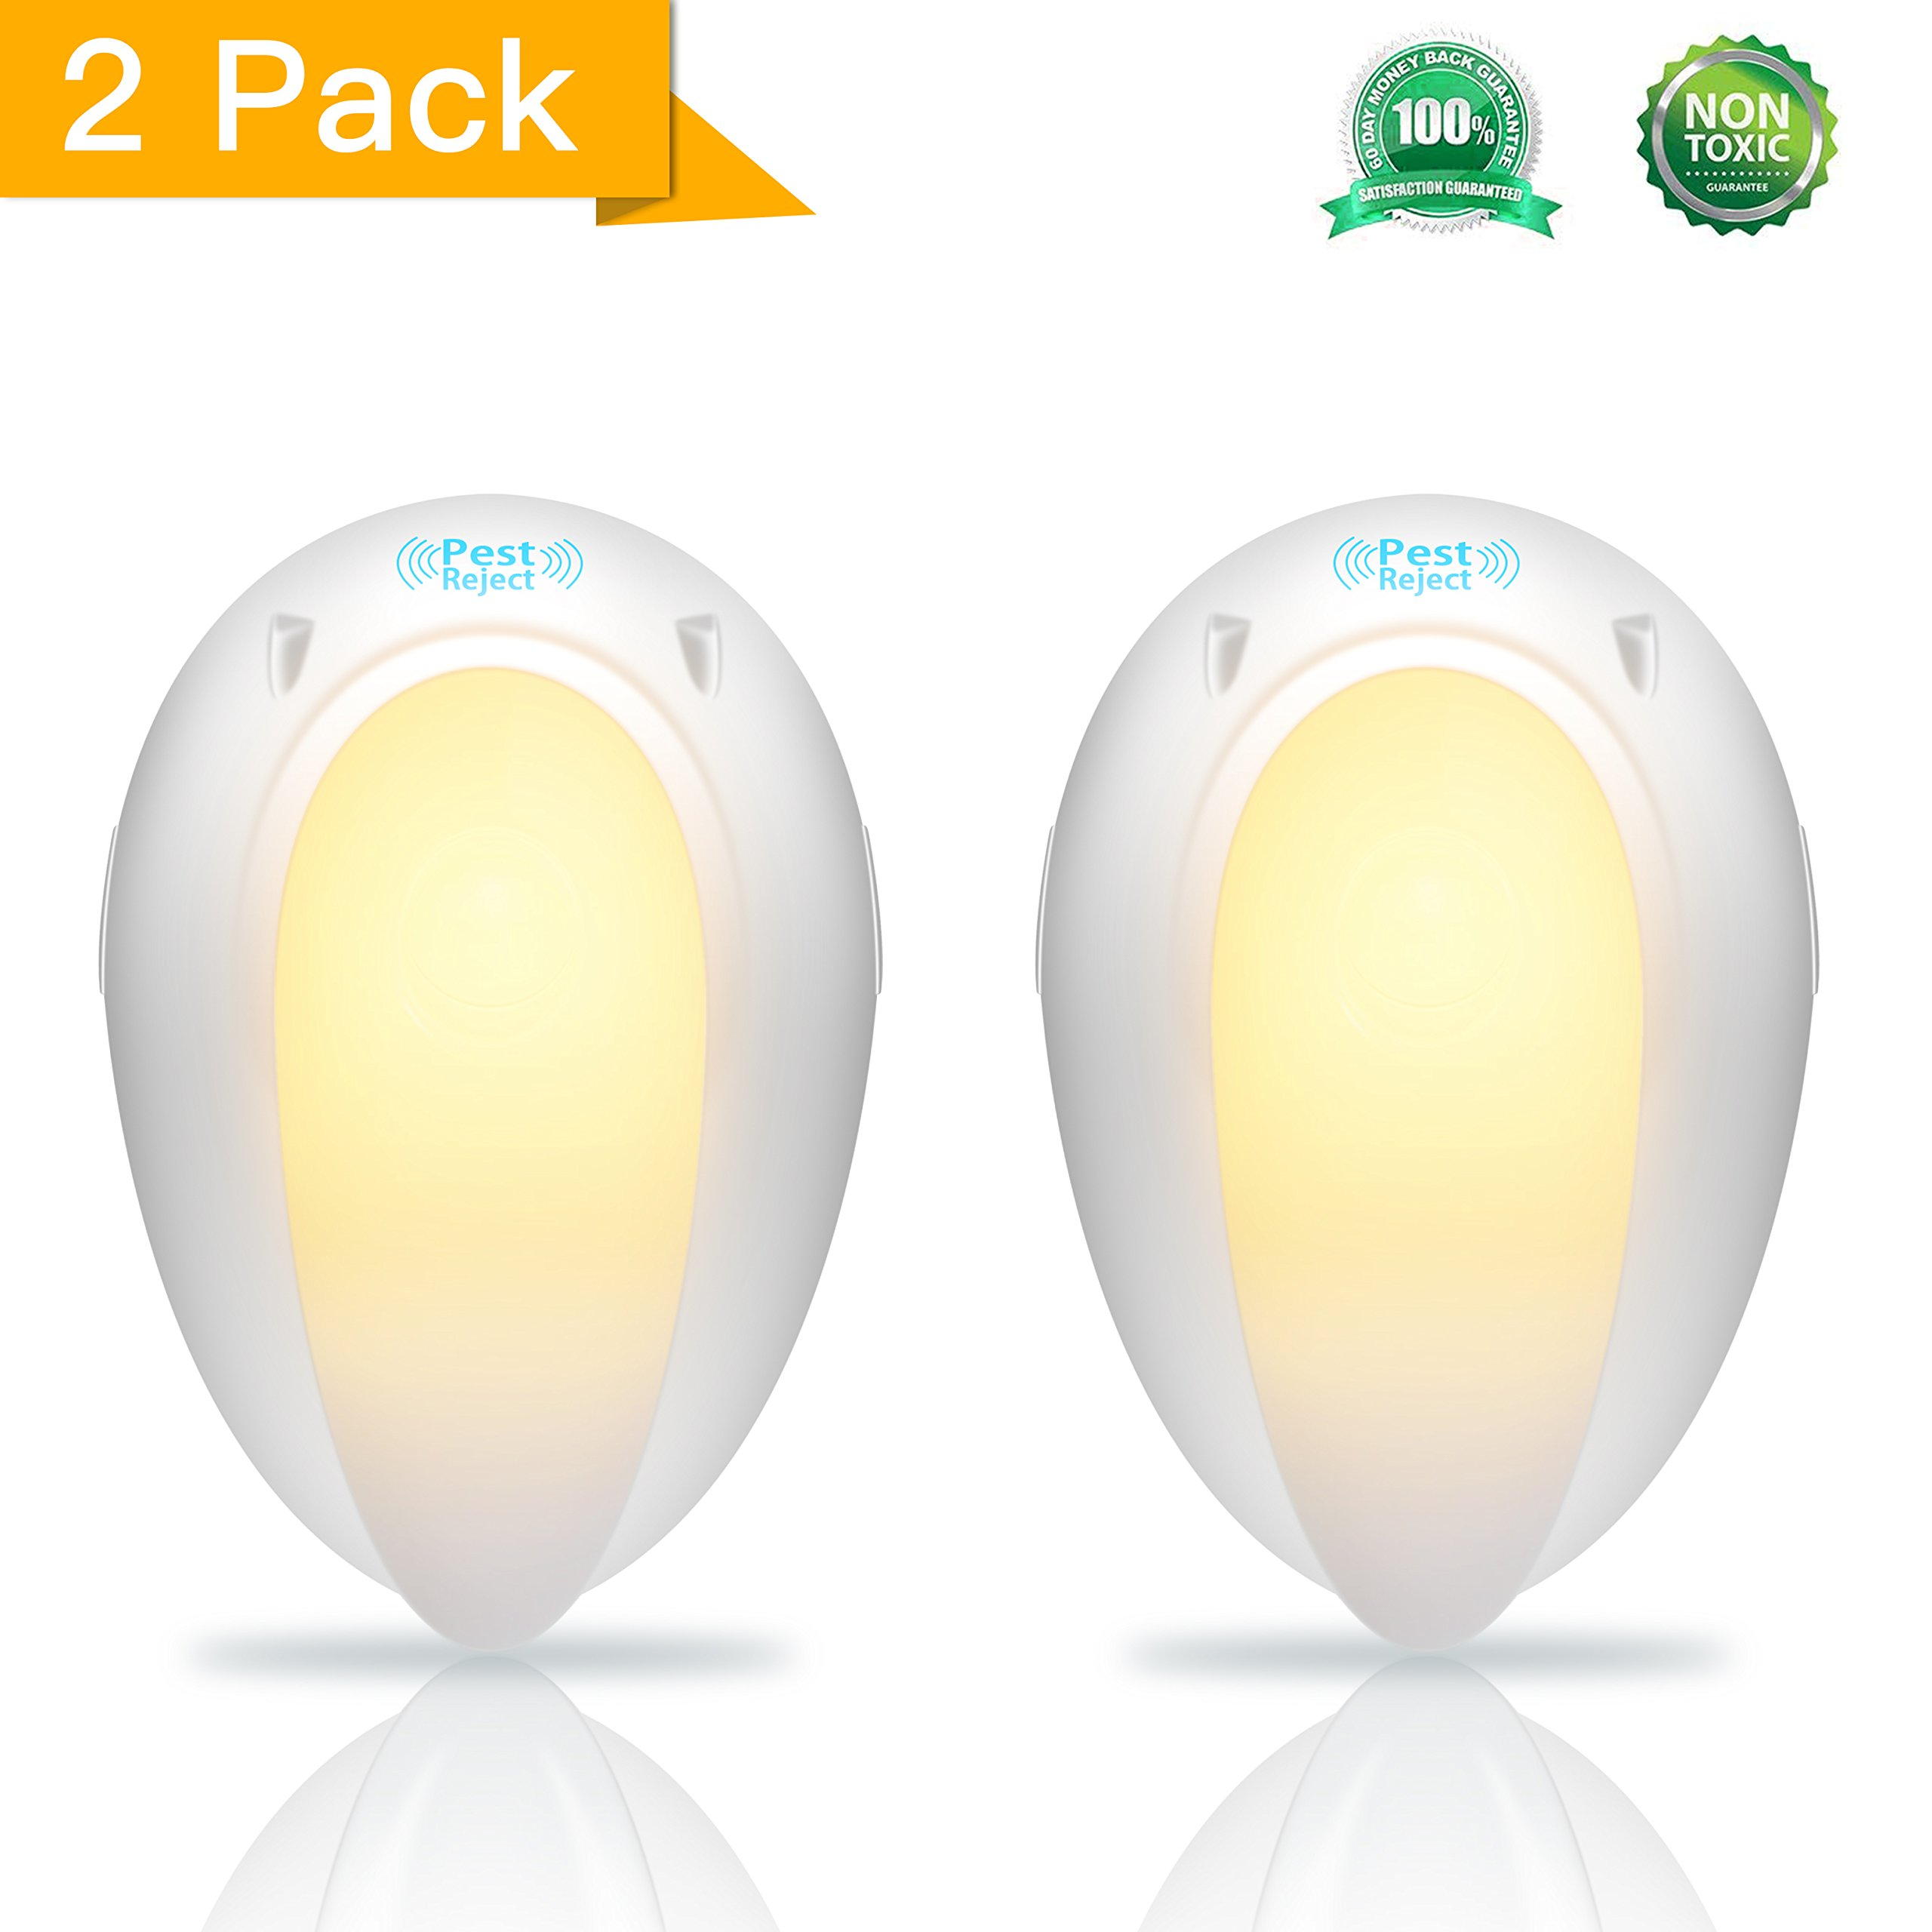 Safky Ultrasonic Pest Repellent (2-pack) Electronic Bug Repellent Indoor with Night Light, Best Pest Control Repeller and Get Rid of Mosquitoes, Bugs, Insects, Rats, Fleas, Rodents, etc